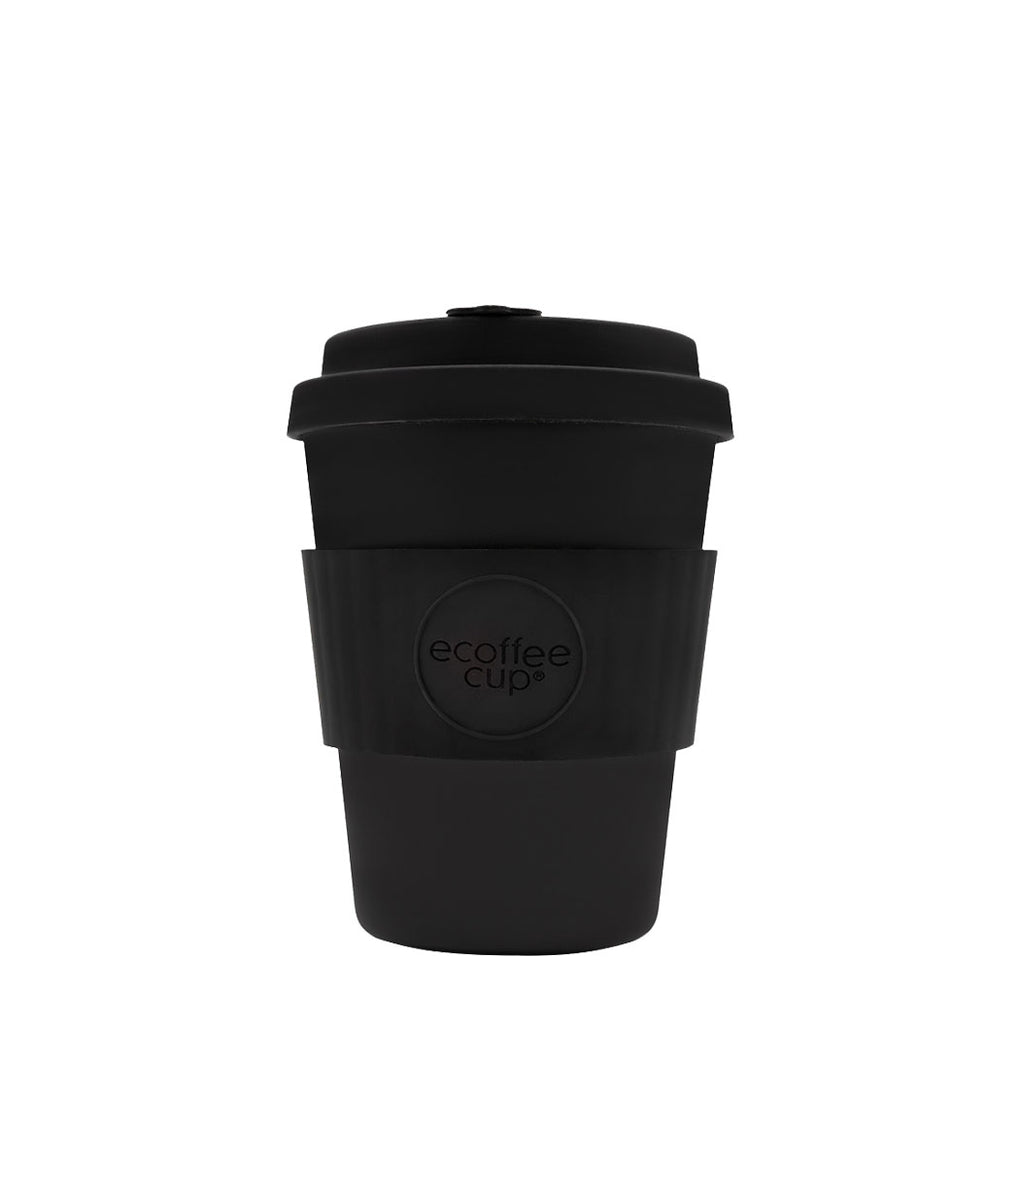 Ecoffee Cup - Take away muki 340 ml - Kerr & Napier